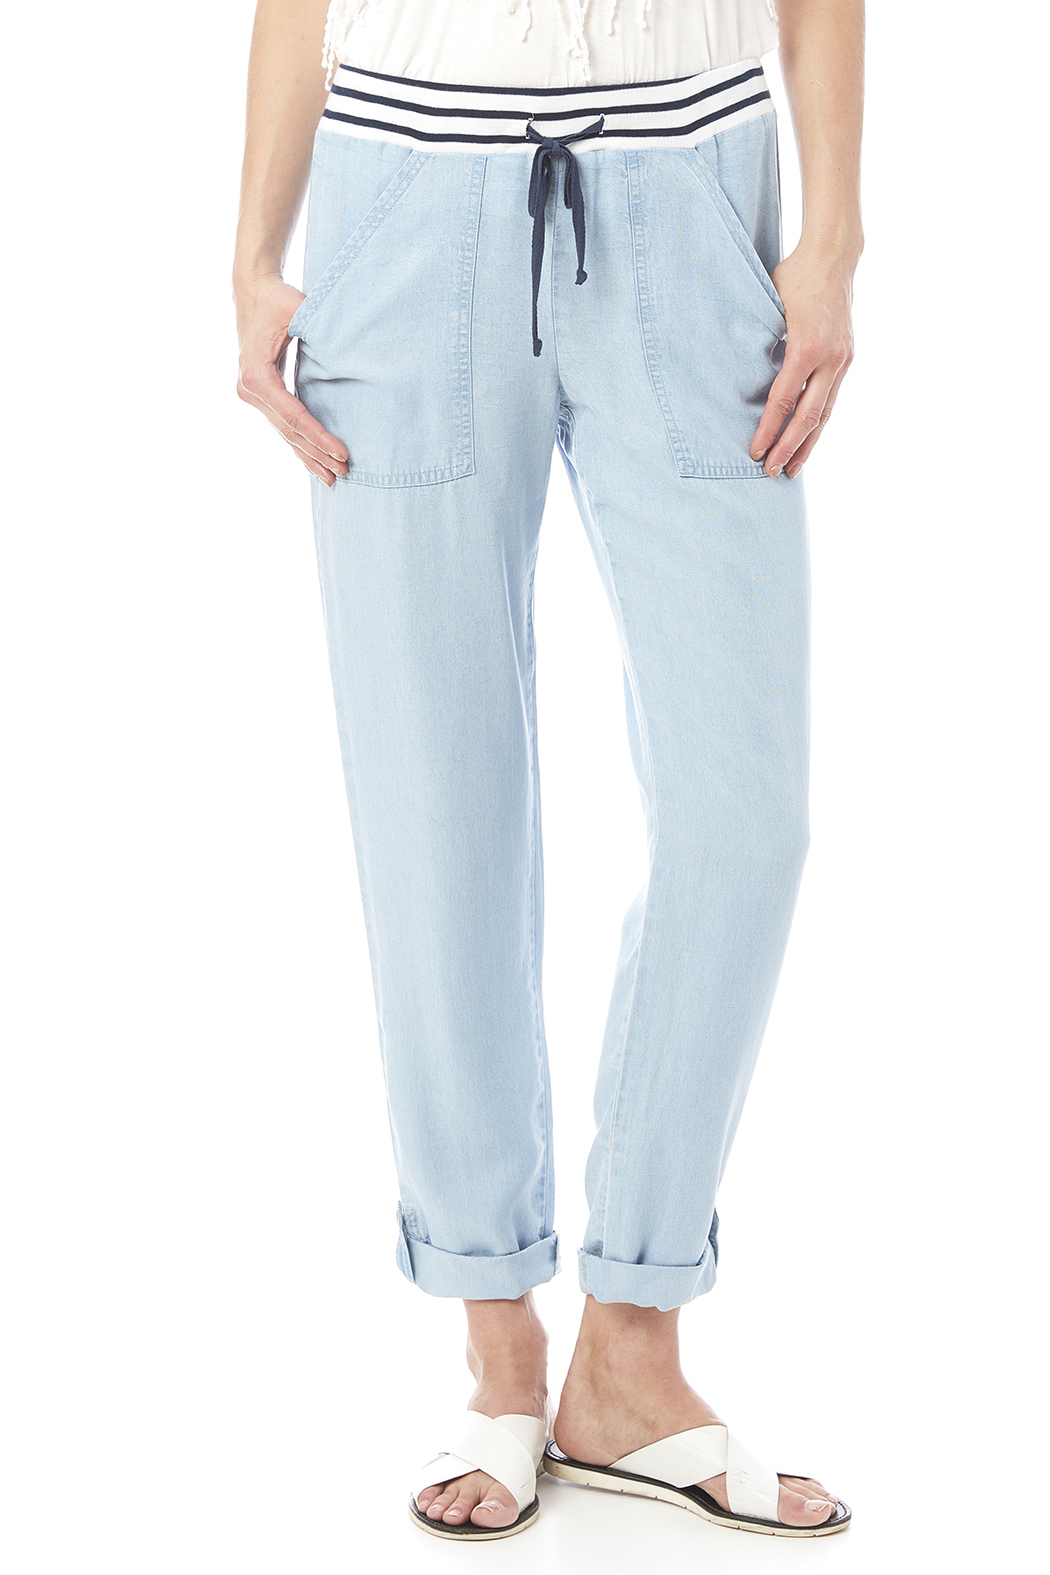 Splendid Chambray Pant - Front Cropped Image